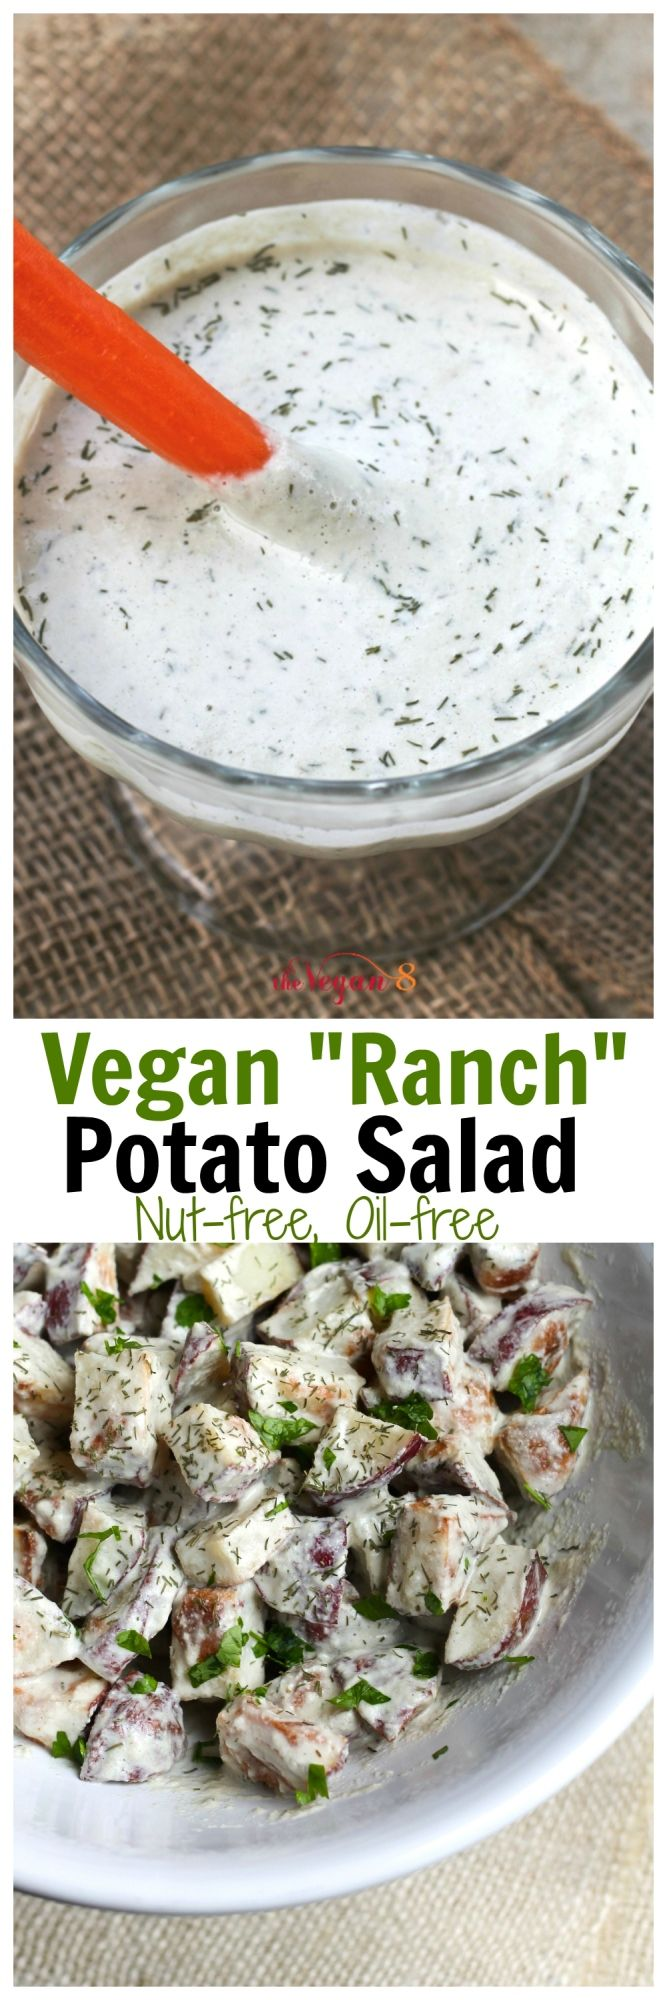 "Vegan ""Ranch"" Potato Salad that is oil-free, soy-free, gluten-free and only 8 ingredients! (+salt&water) and nut-free! http://TheVegan8.com #vegan #glutenfree #oilfree #salads #ranch #potato"